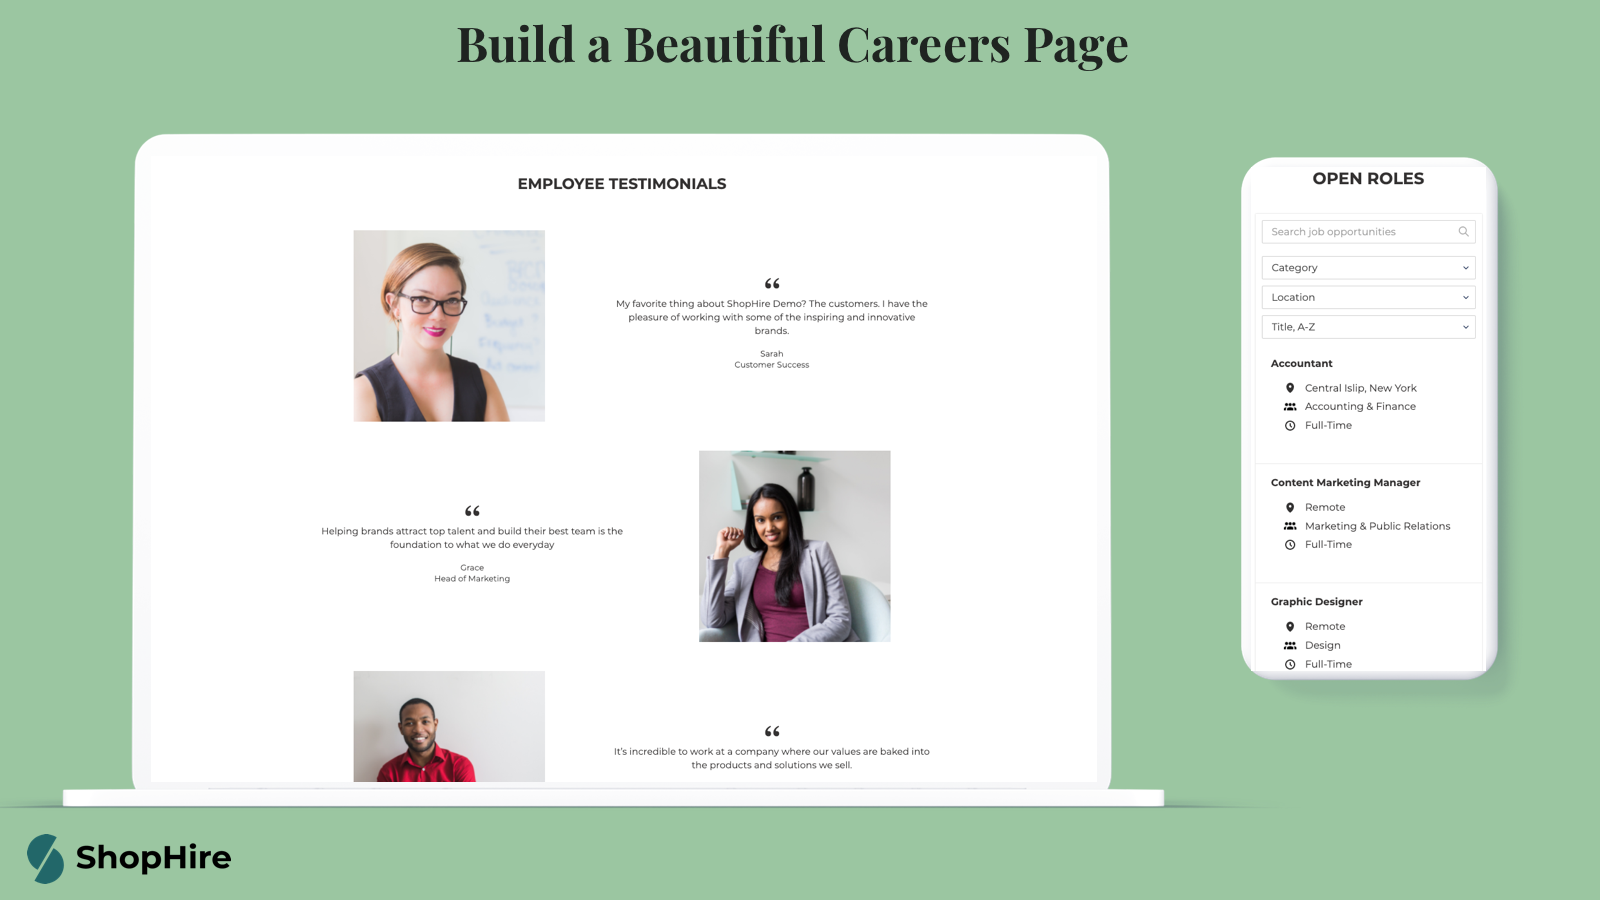 Build a beautiful careers page to attract top talent